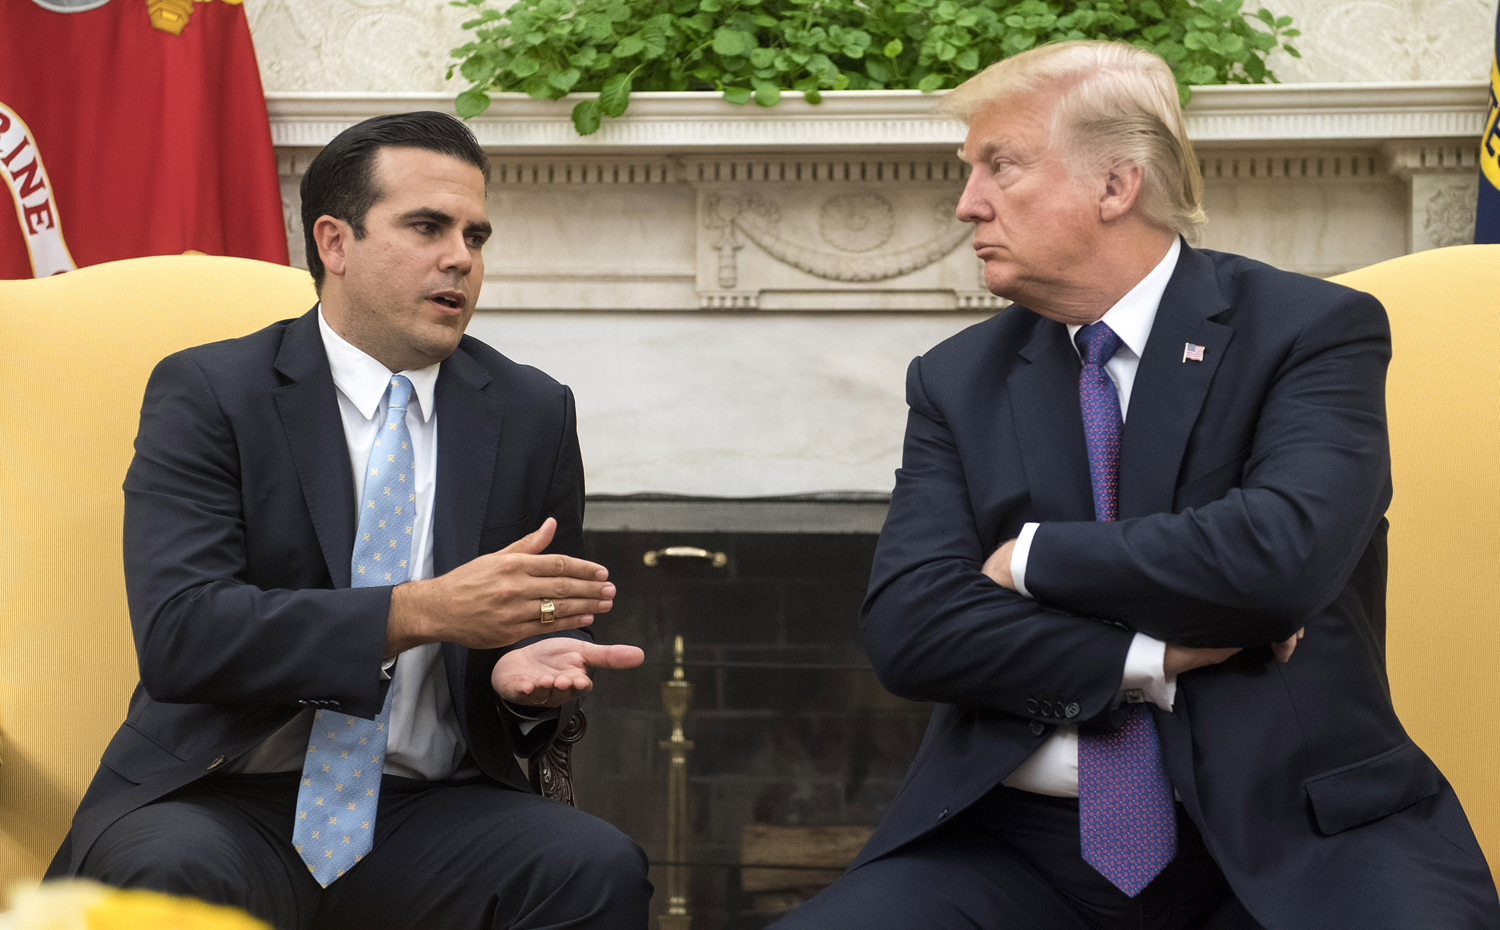 President Donald Trump listens as Puerto Rico Gov. Ricardo Rossello speaks during a meeting in the Oval Office at the White House Oct. 19, 2017.